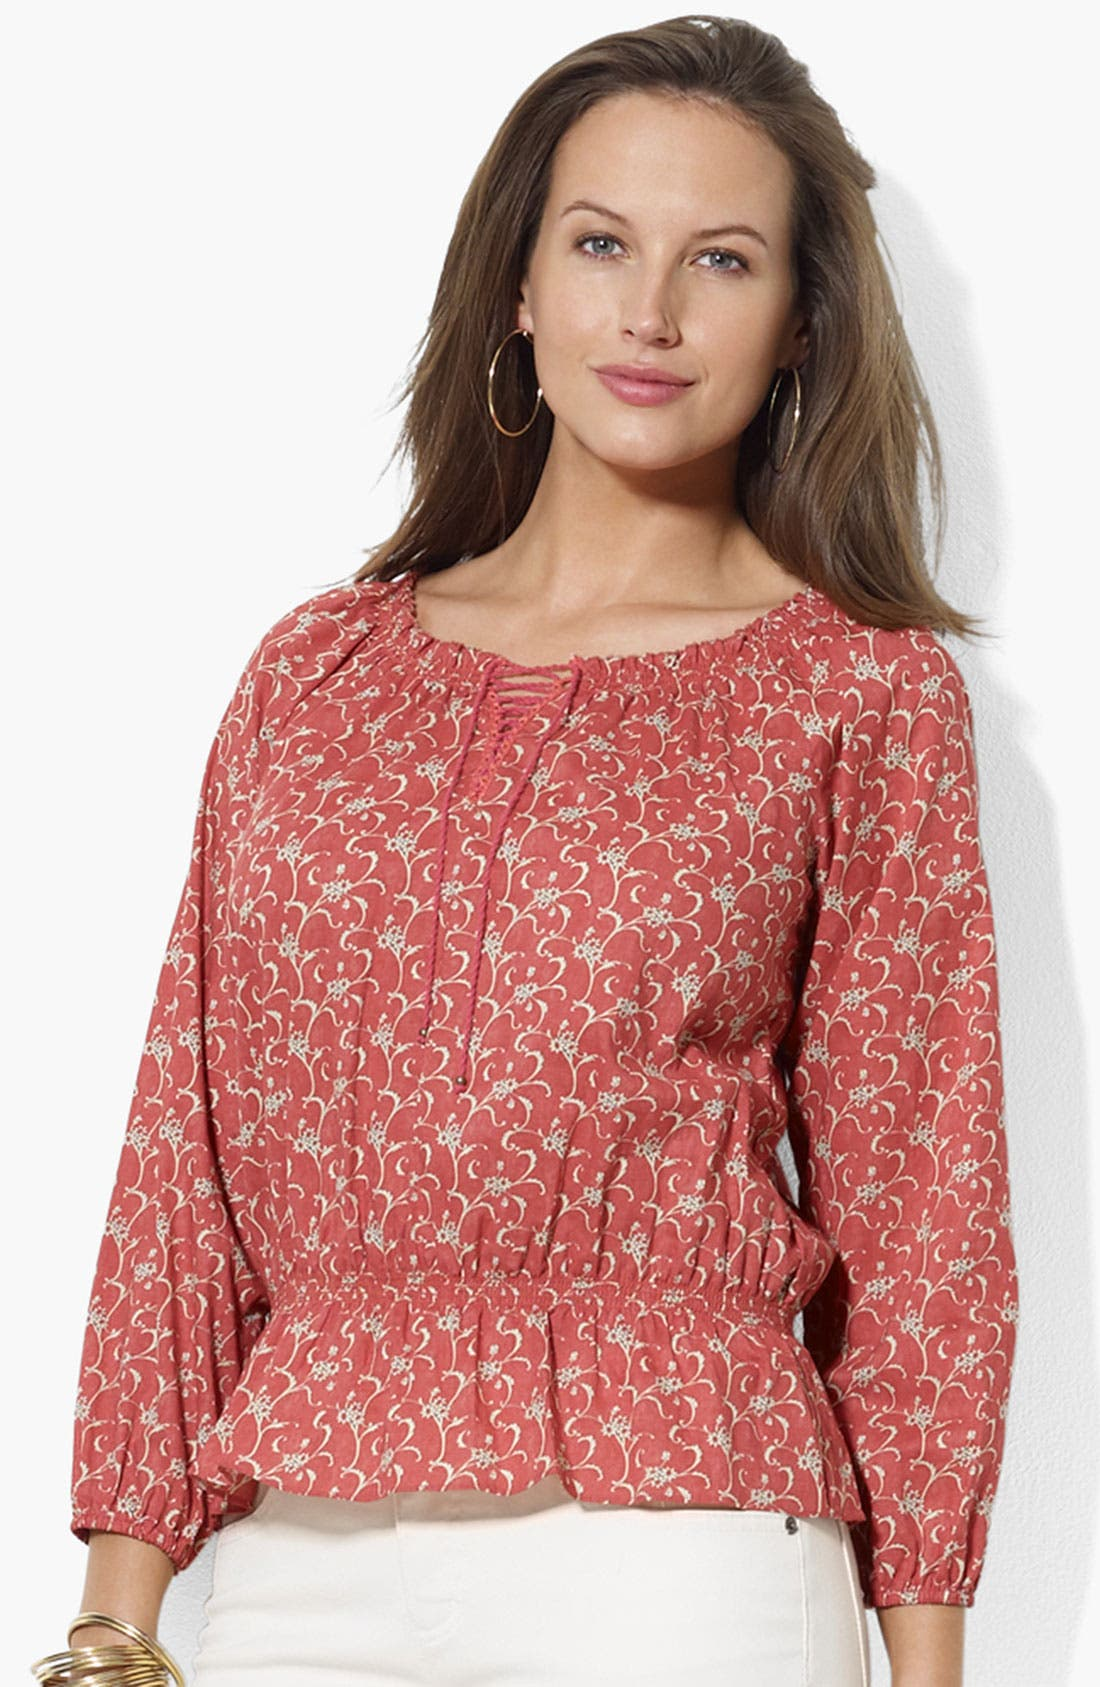 Alternate Image 1 Selected - Lauren Ralph Lauren Print Lace Up Peasant Top (Plus Size)